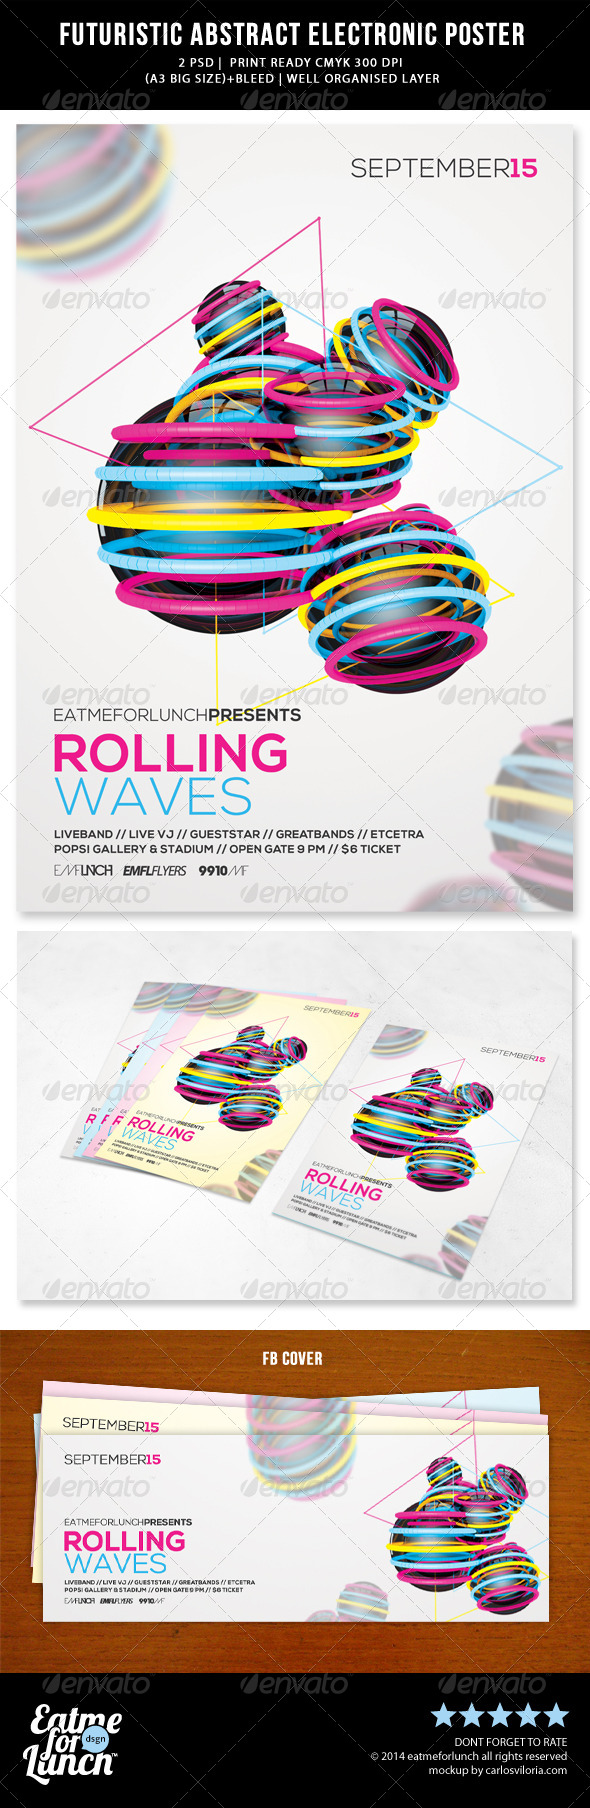 GraphicRiver Futuristic Abstract Electronic Poster Template 8064982